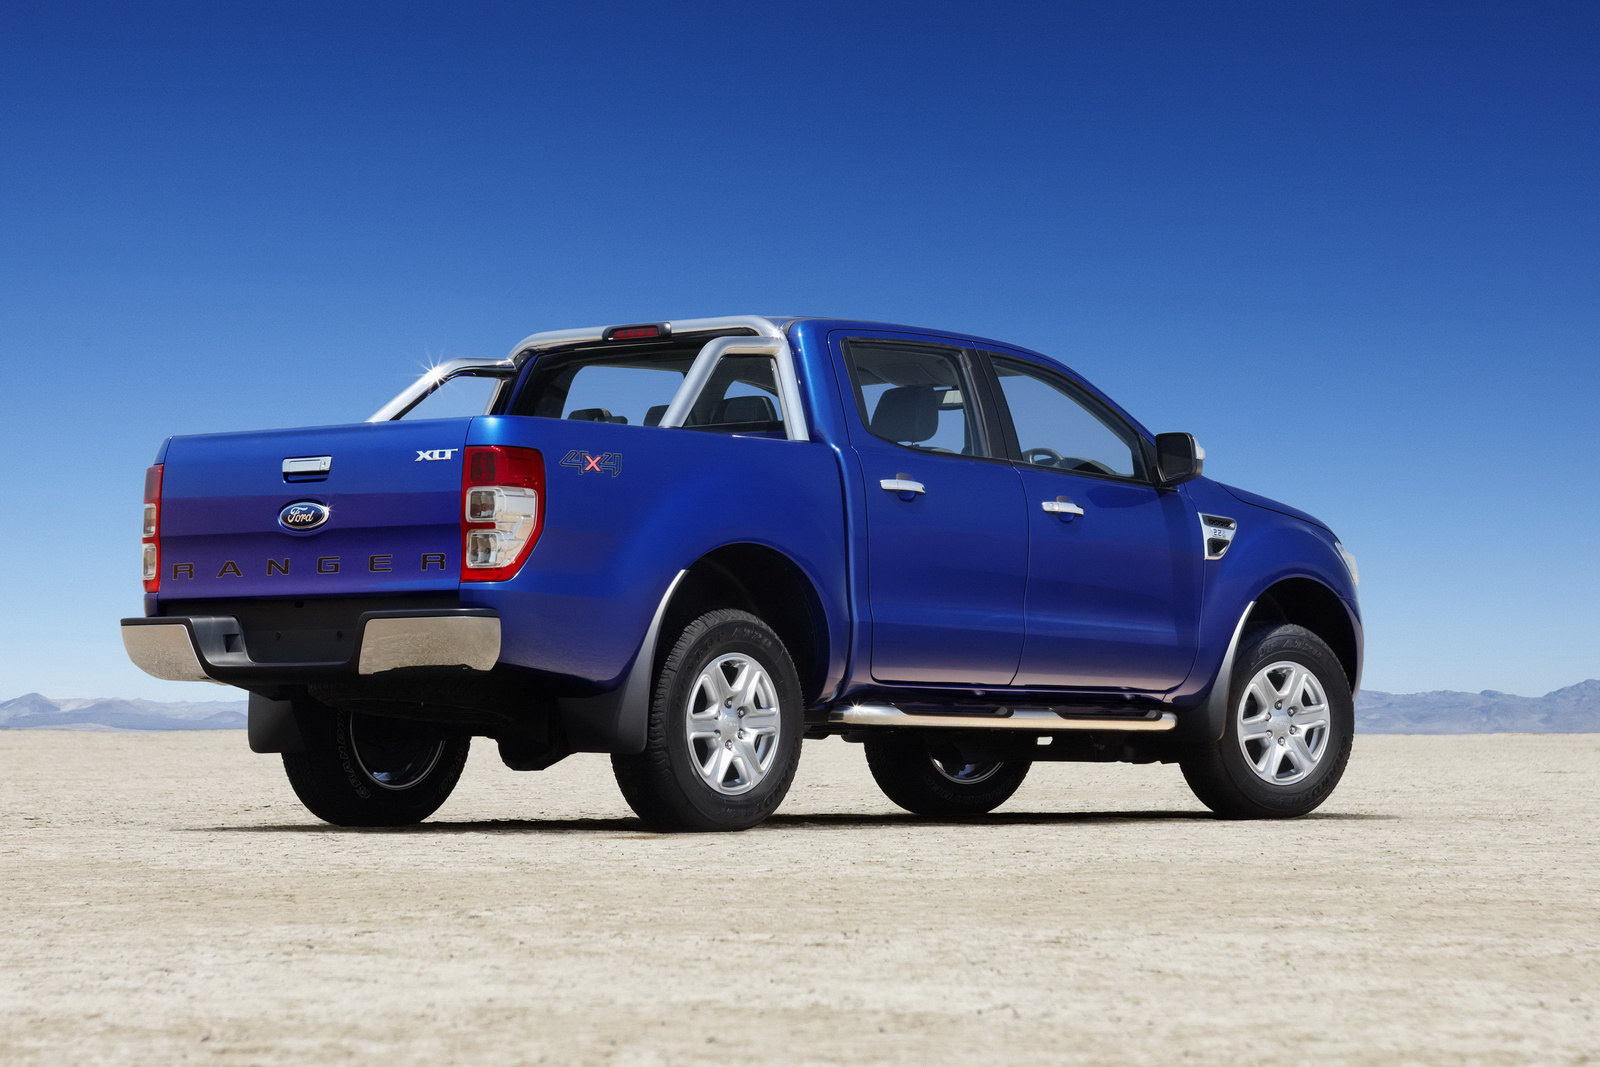 The new Ford Ranger will be built at three sites, sales scheduled to